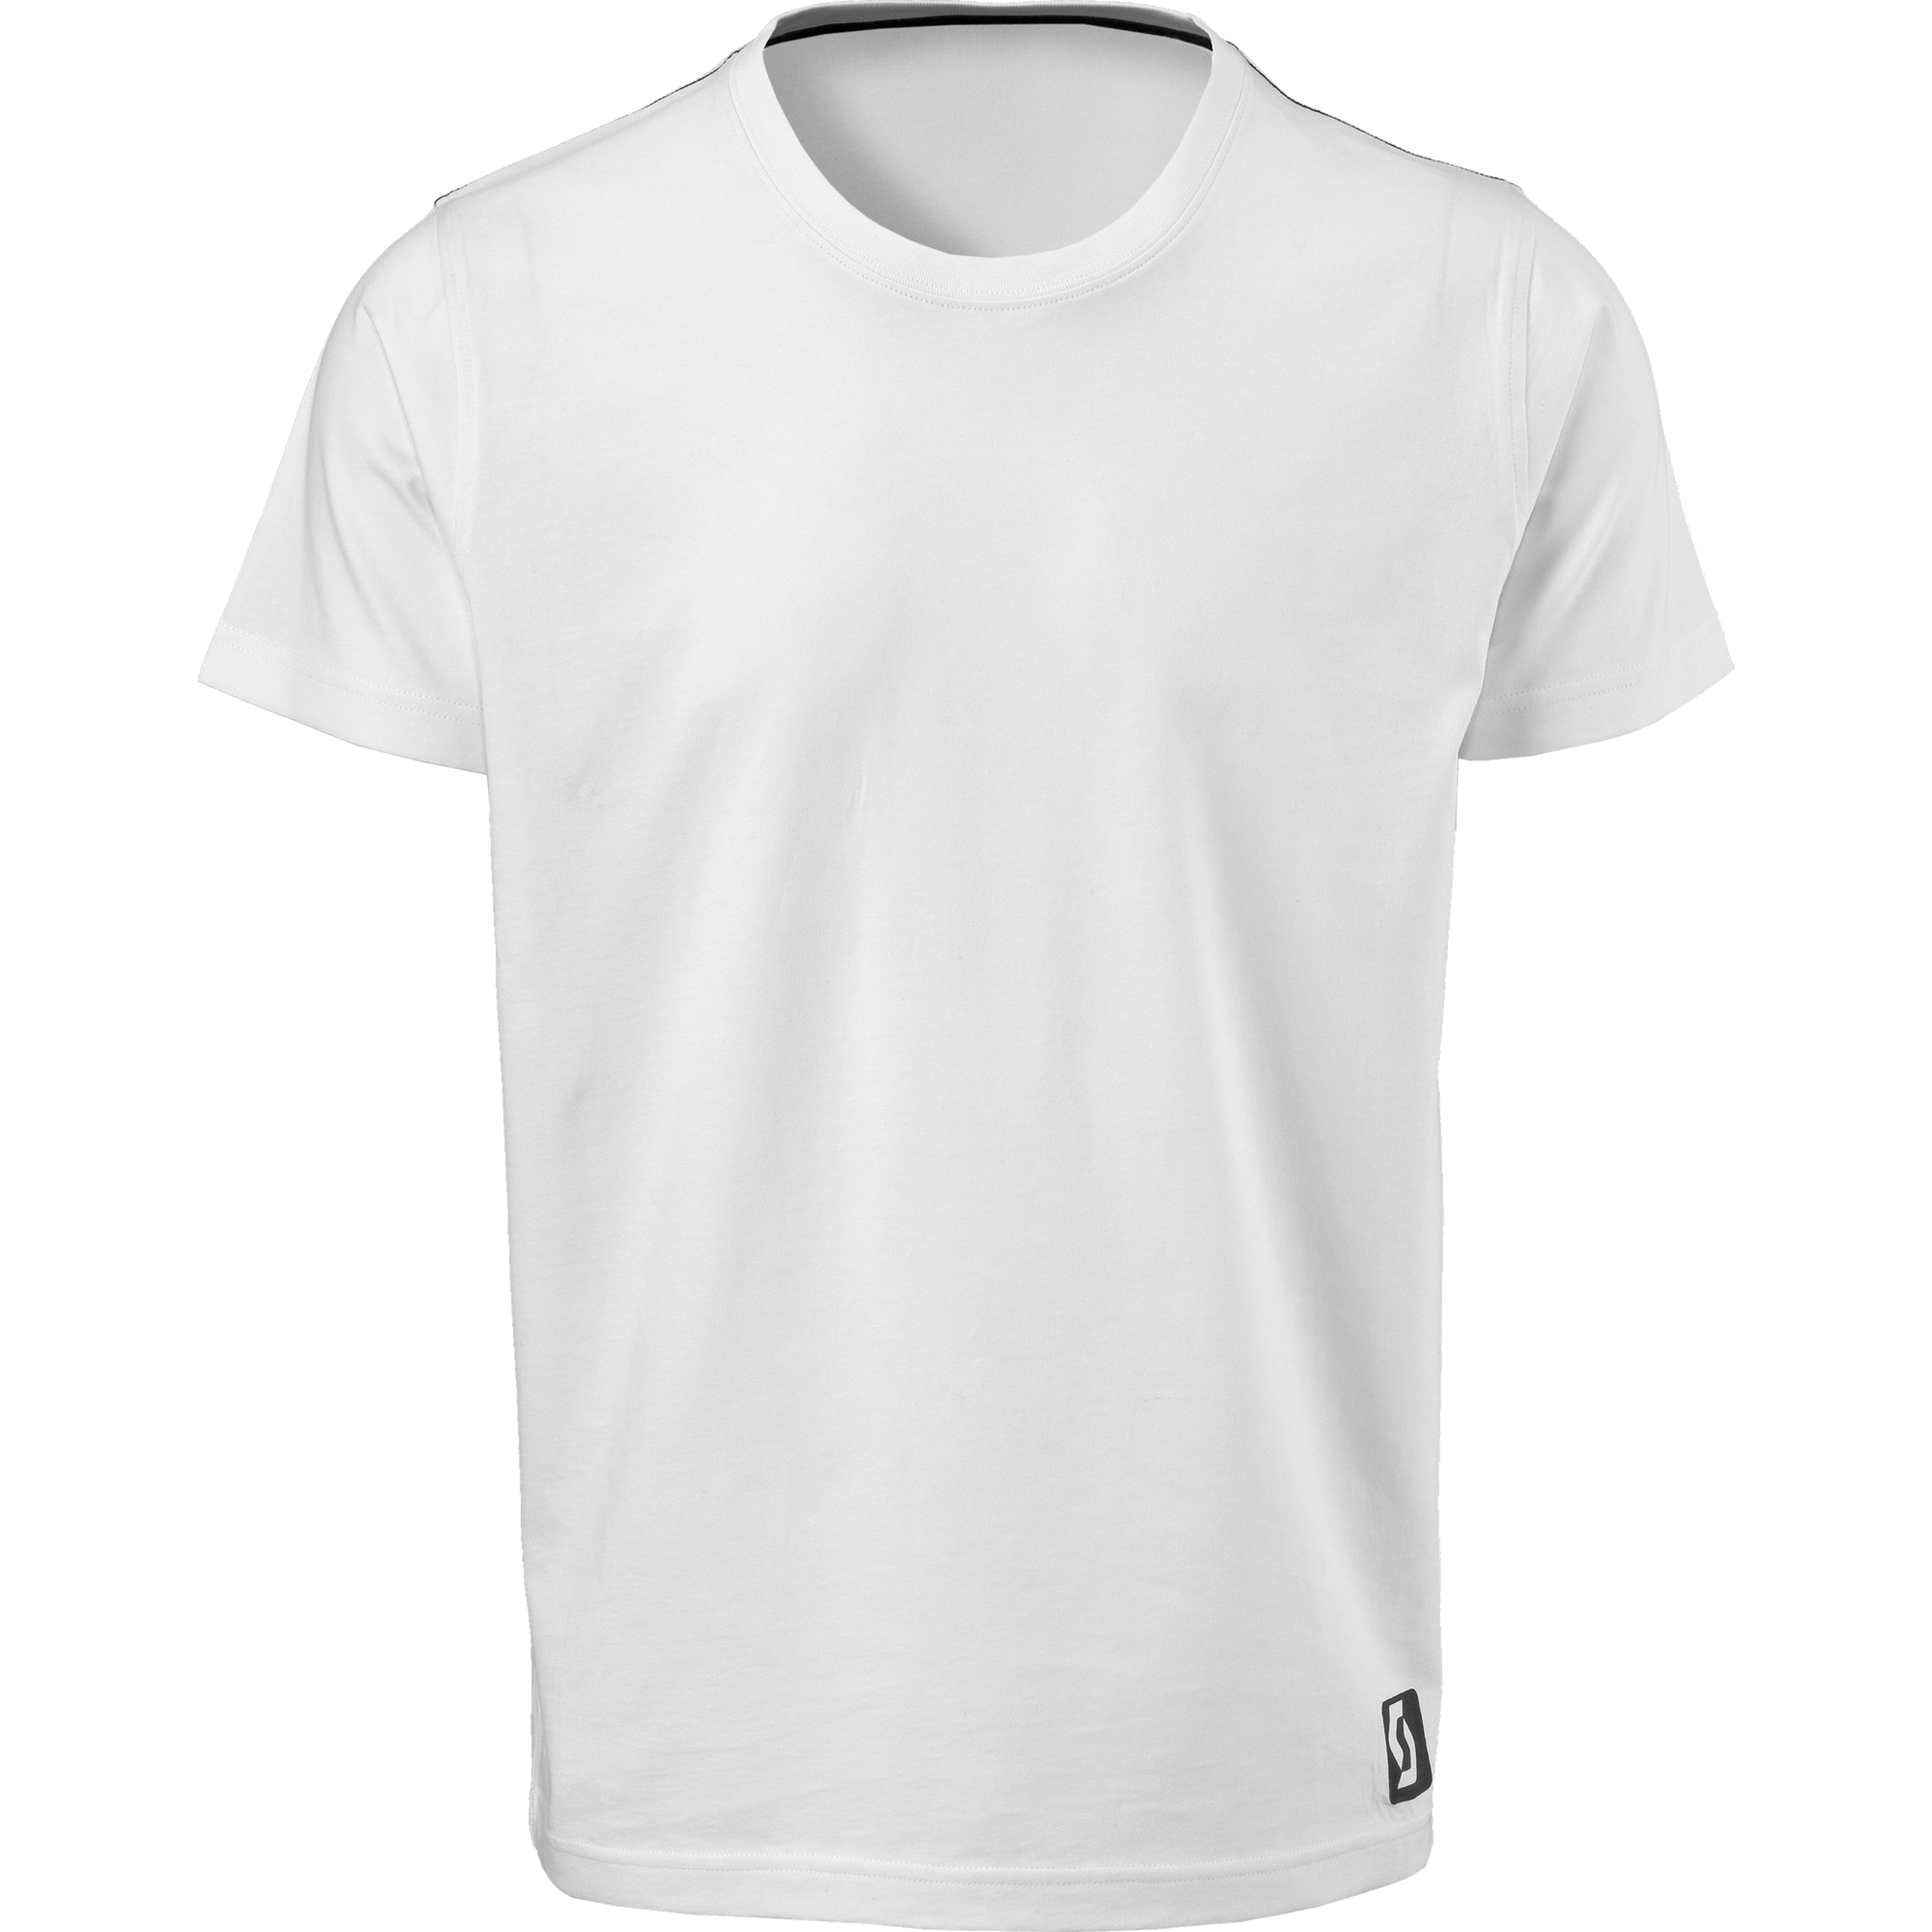 Blank black t shirt png. Shirts images free download